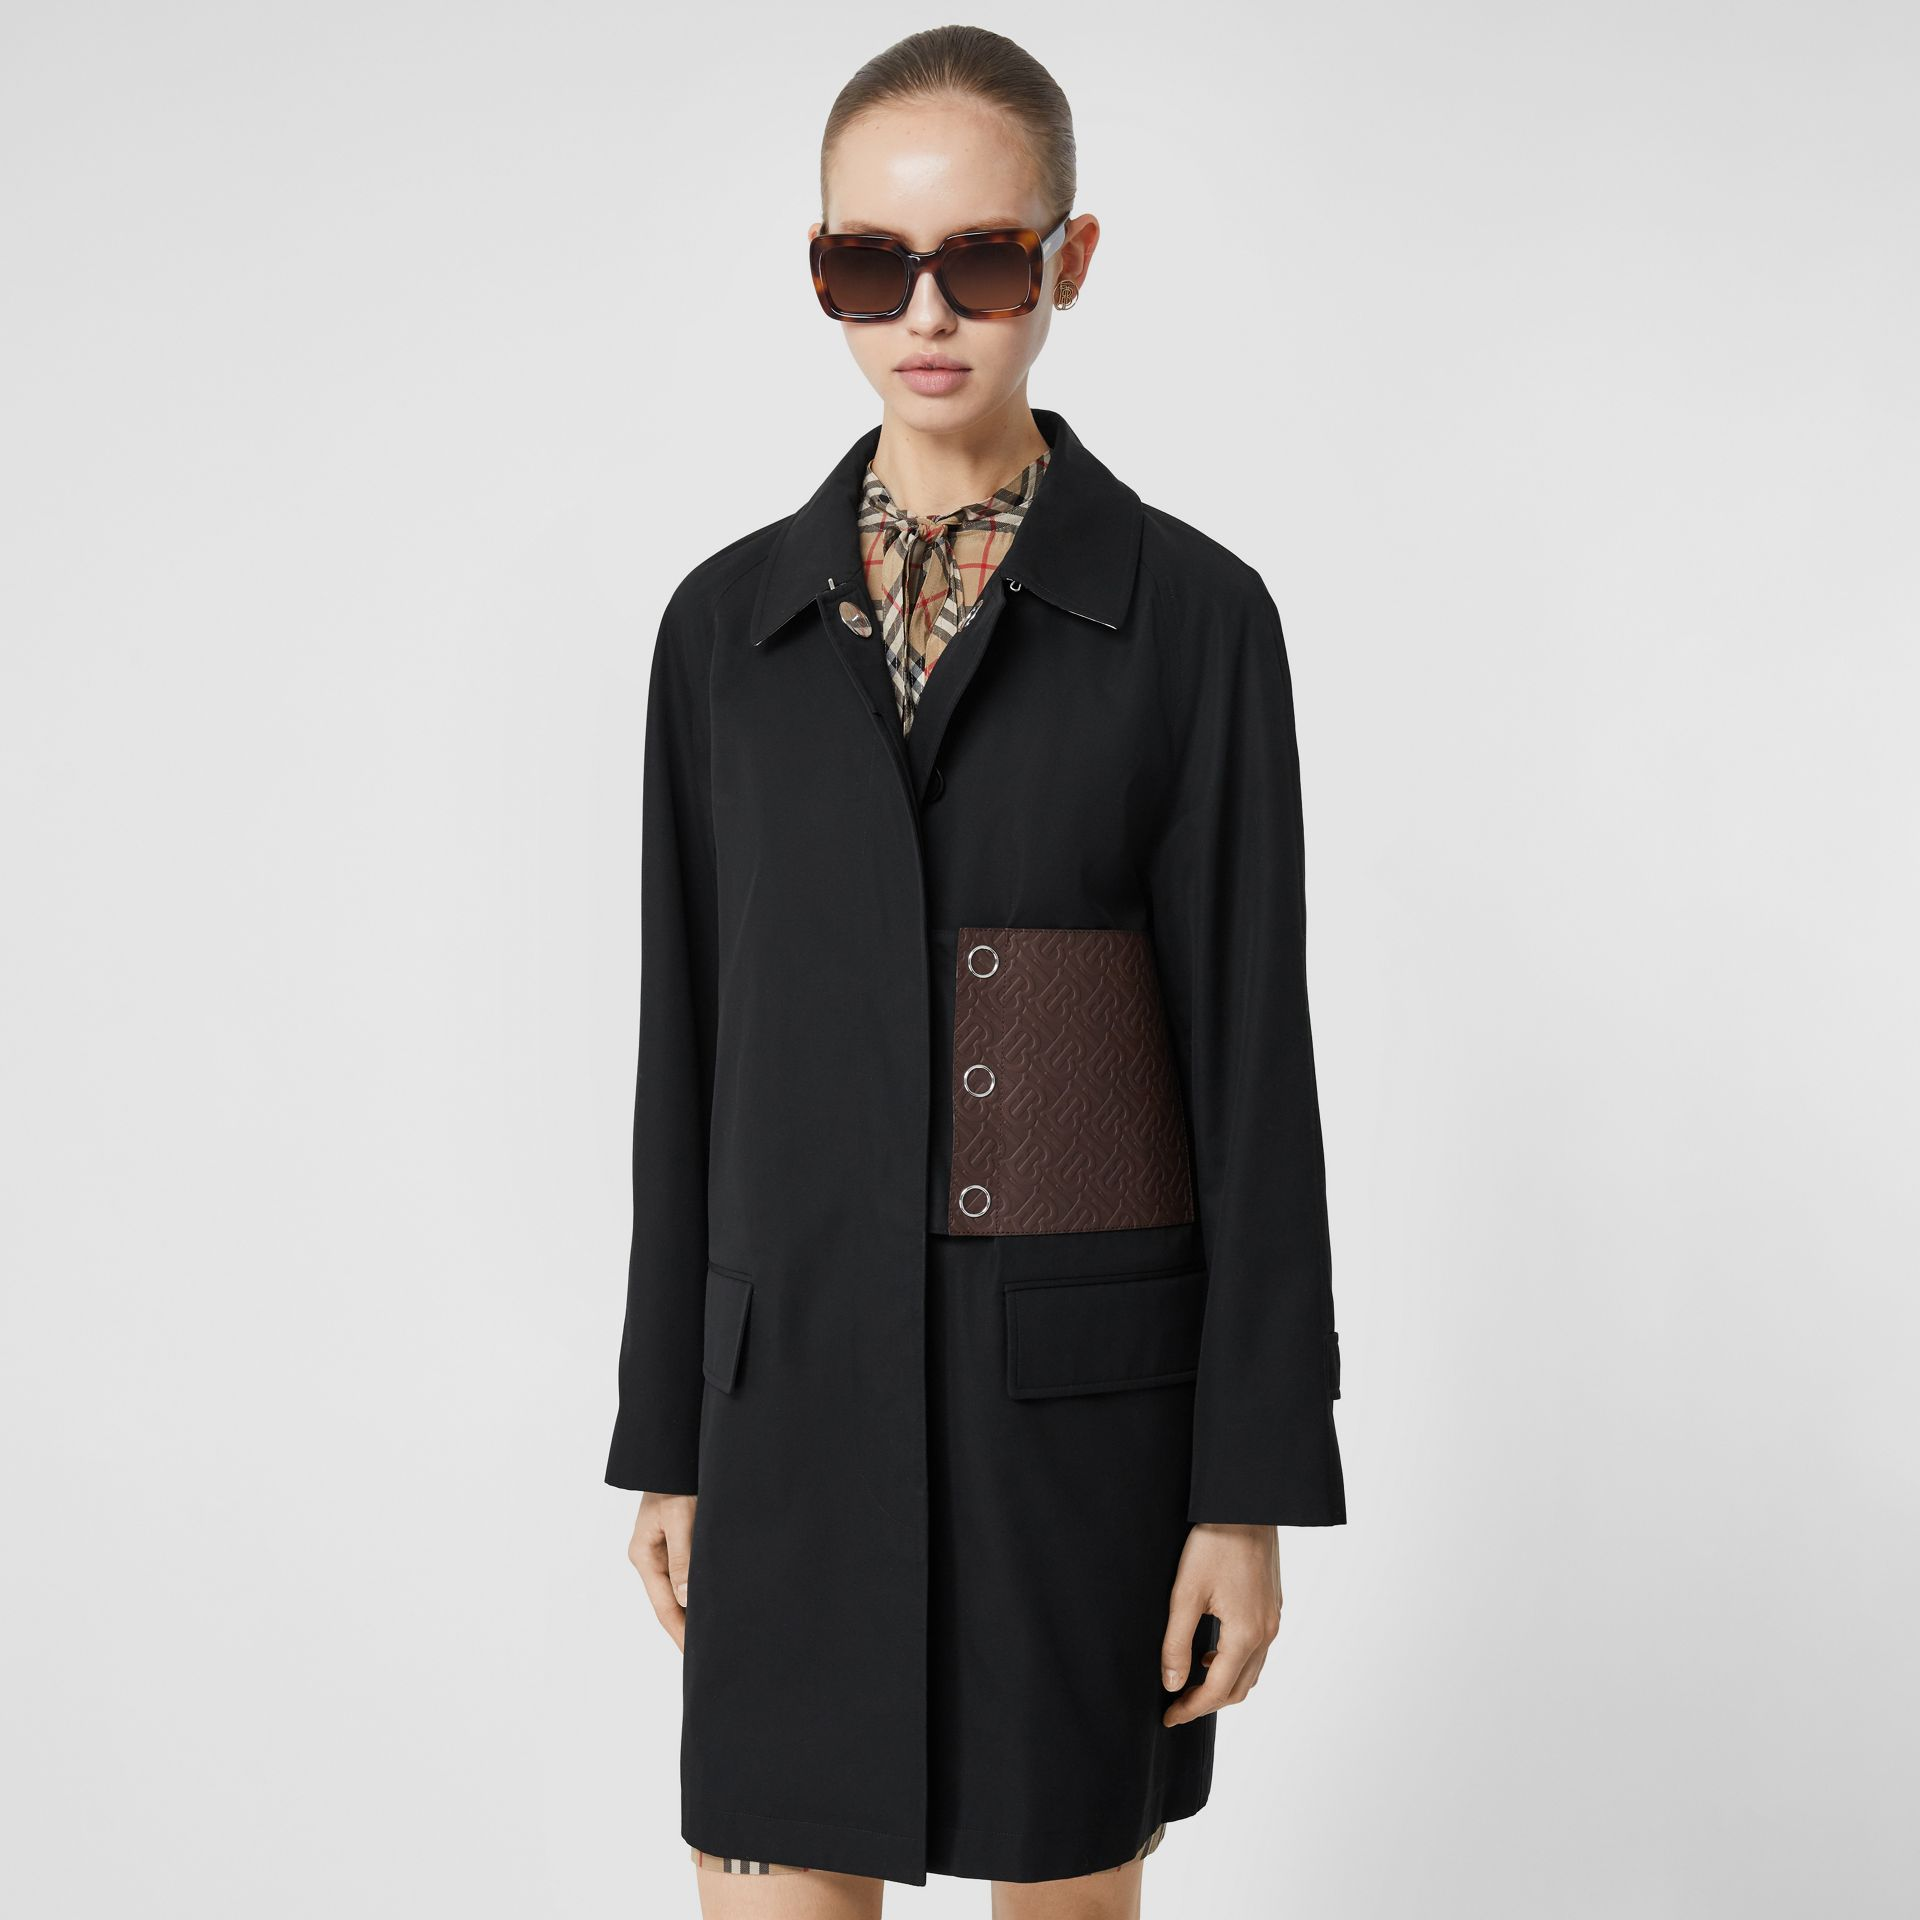 Monogram Leather Detail Cotton Gabardine Car Coat in Black - Women | Burberry United Kingdom - gallery image 6